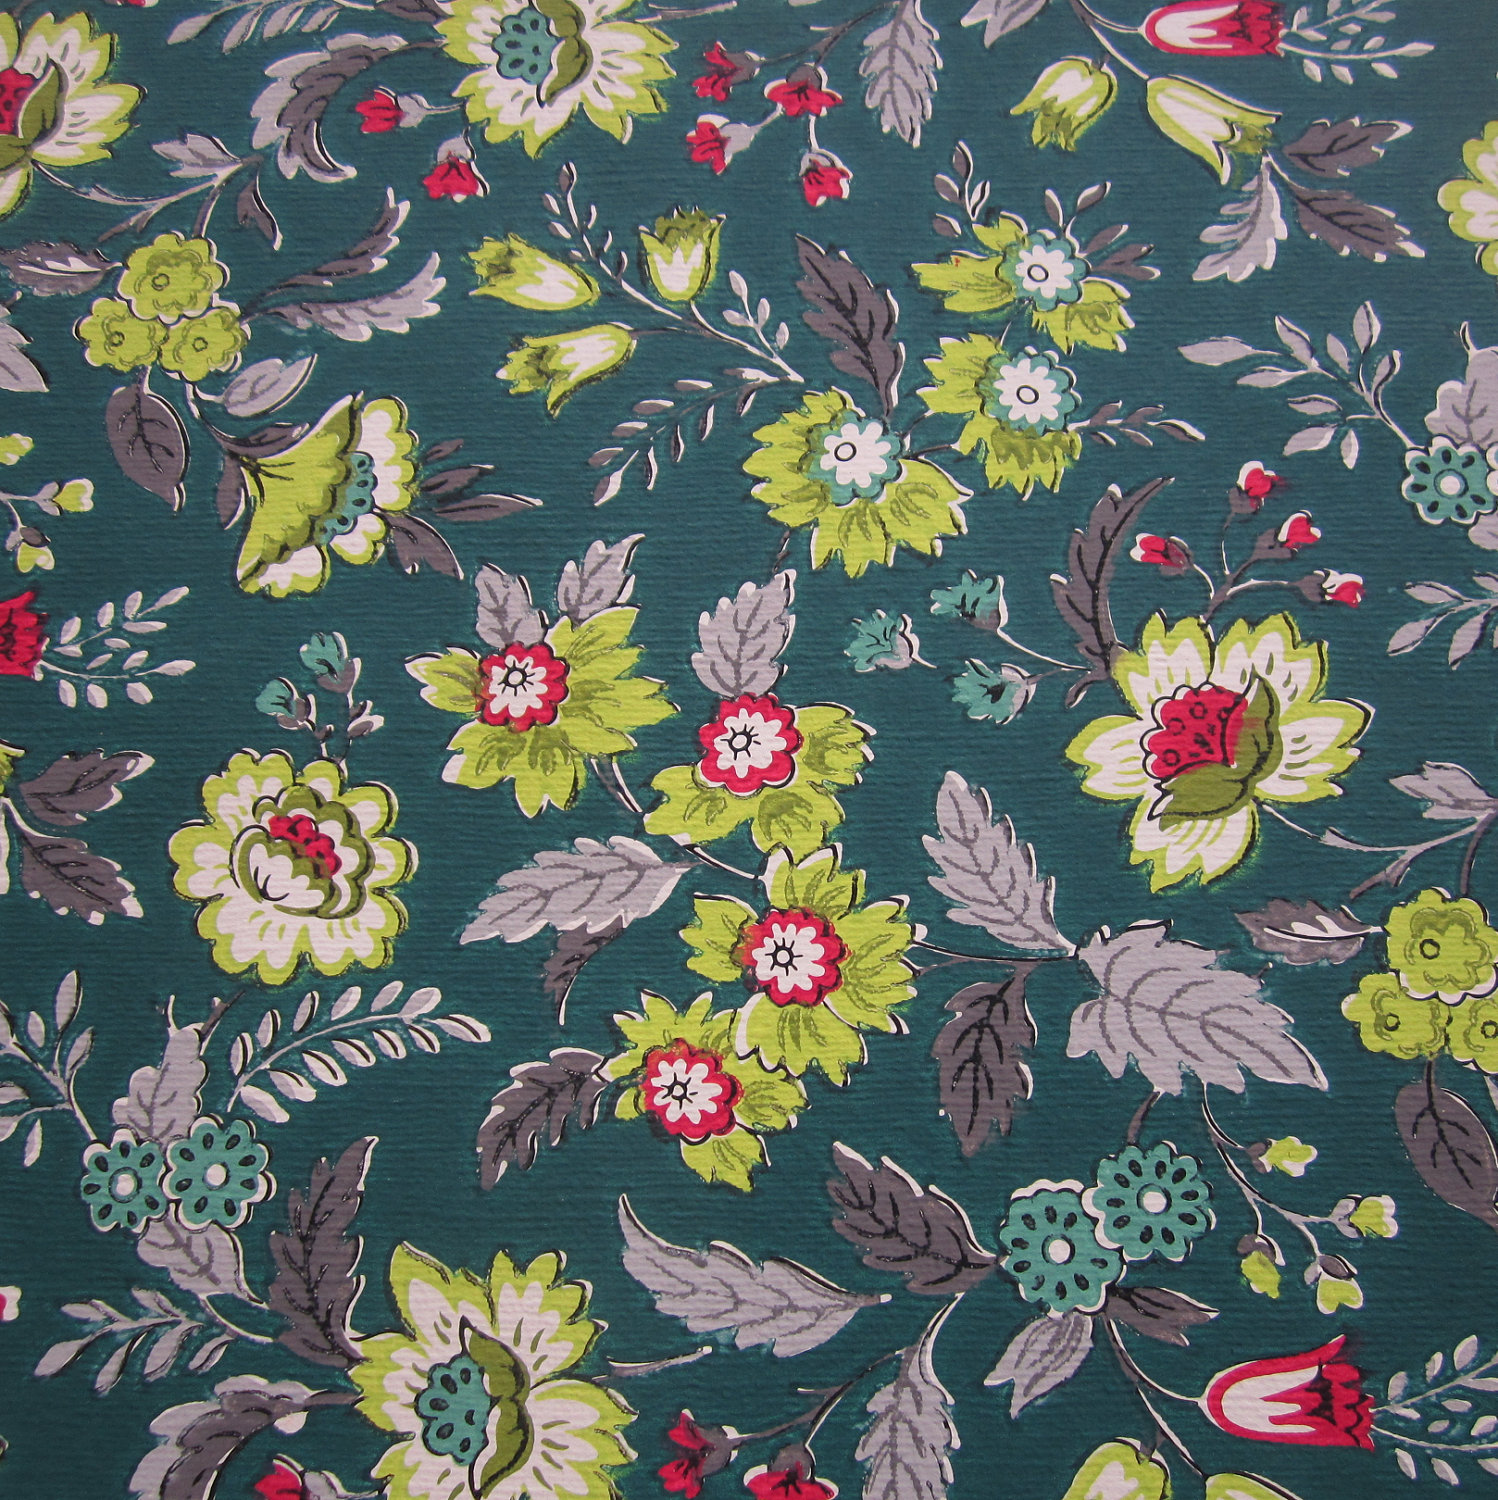 vintage wallpaper theme floral